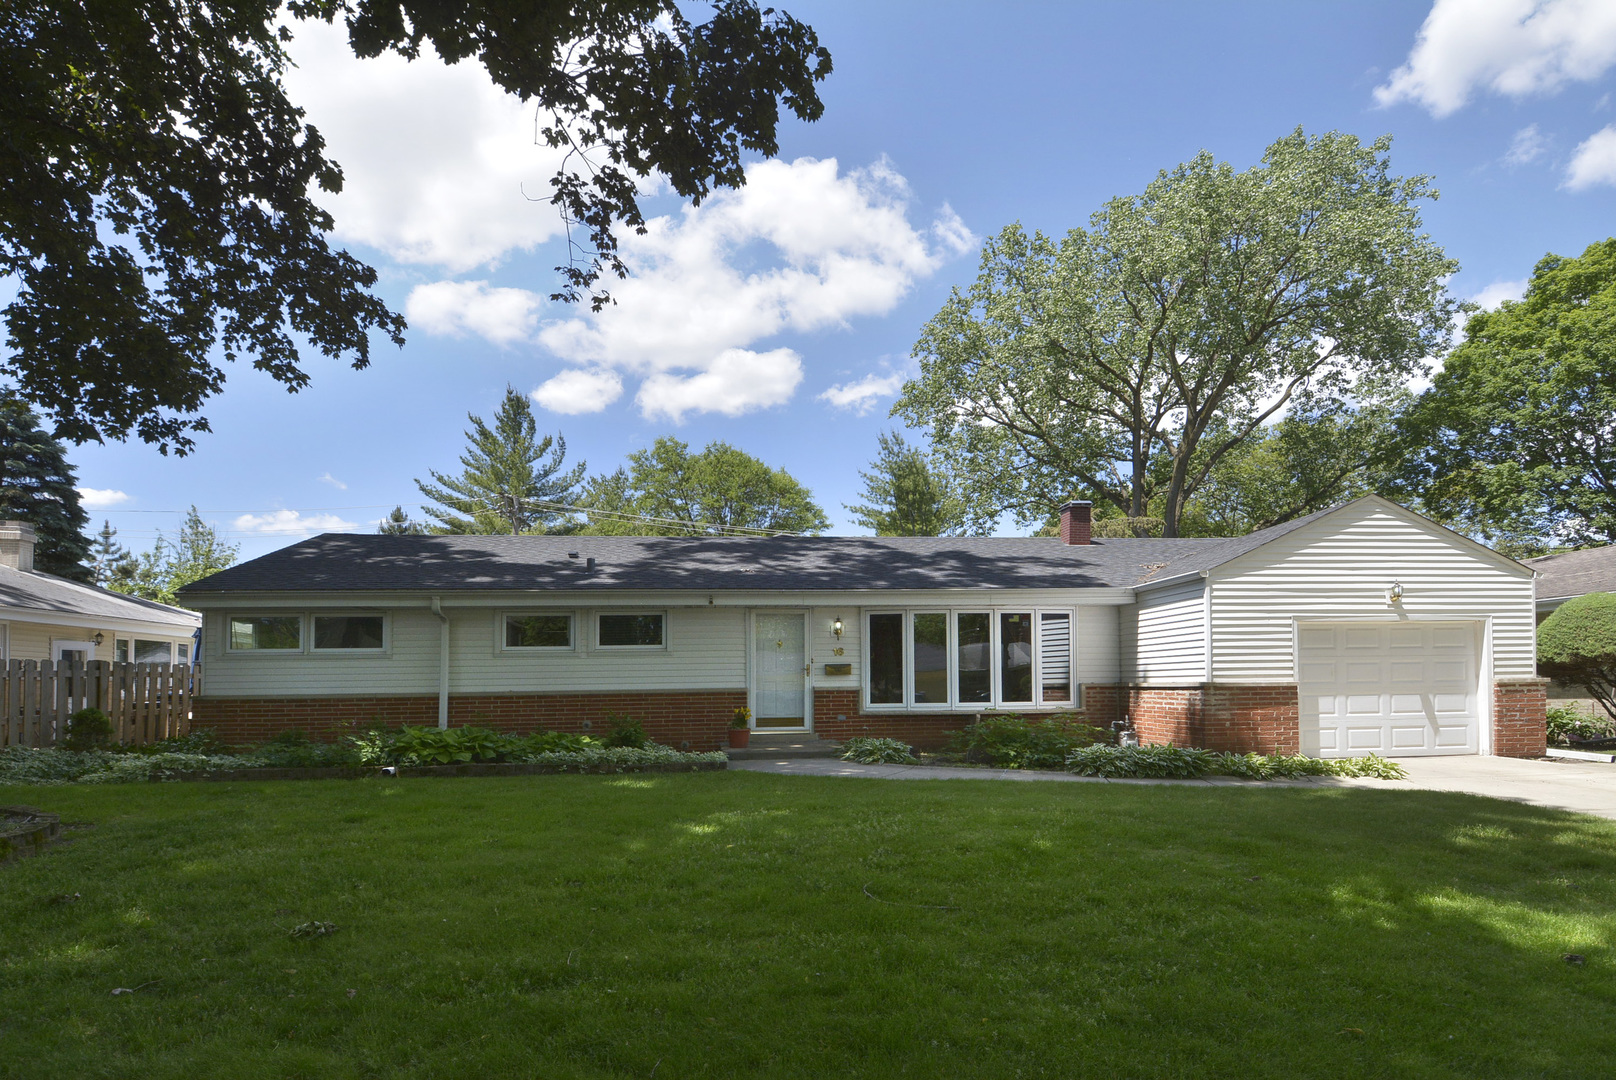 16 South Forrest Avenue, Arlington Heights in Cook County, IL 60004 Home for Sale